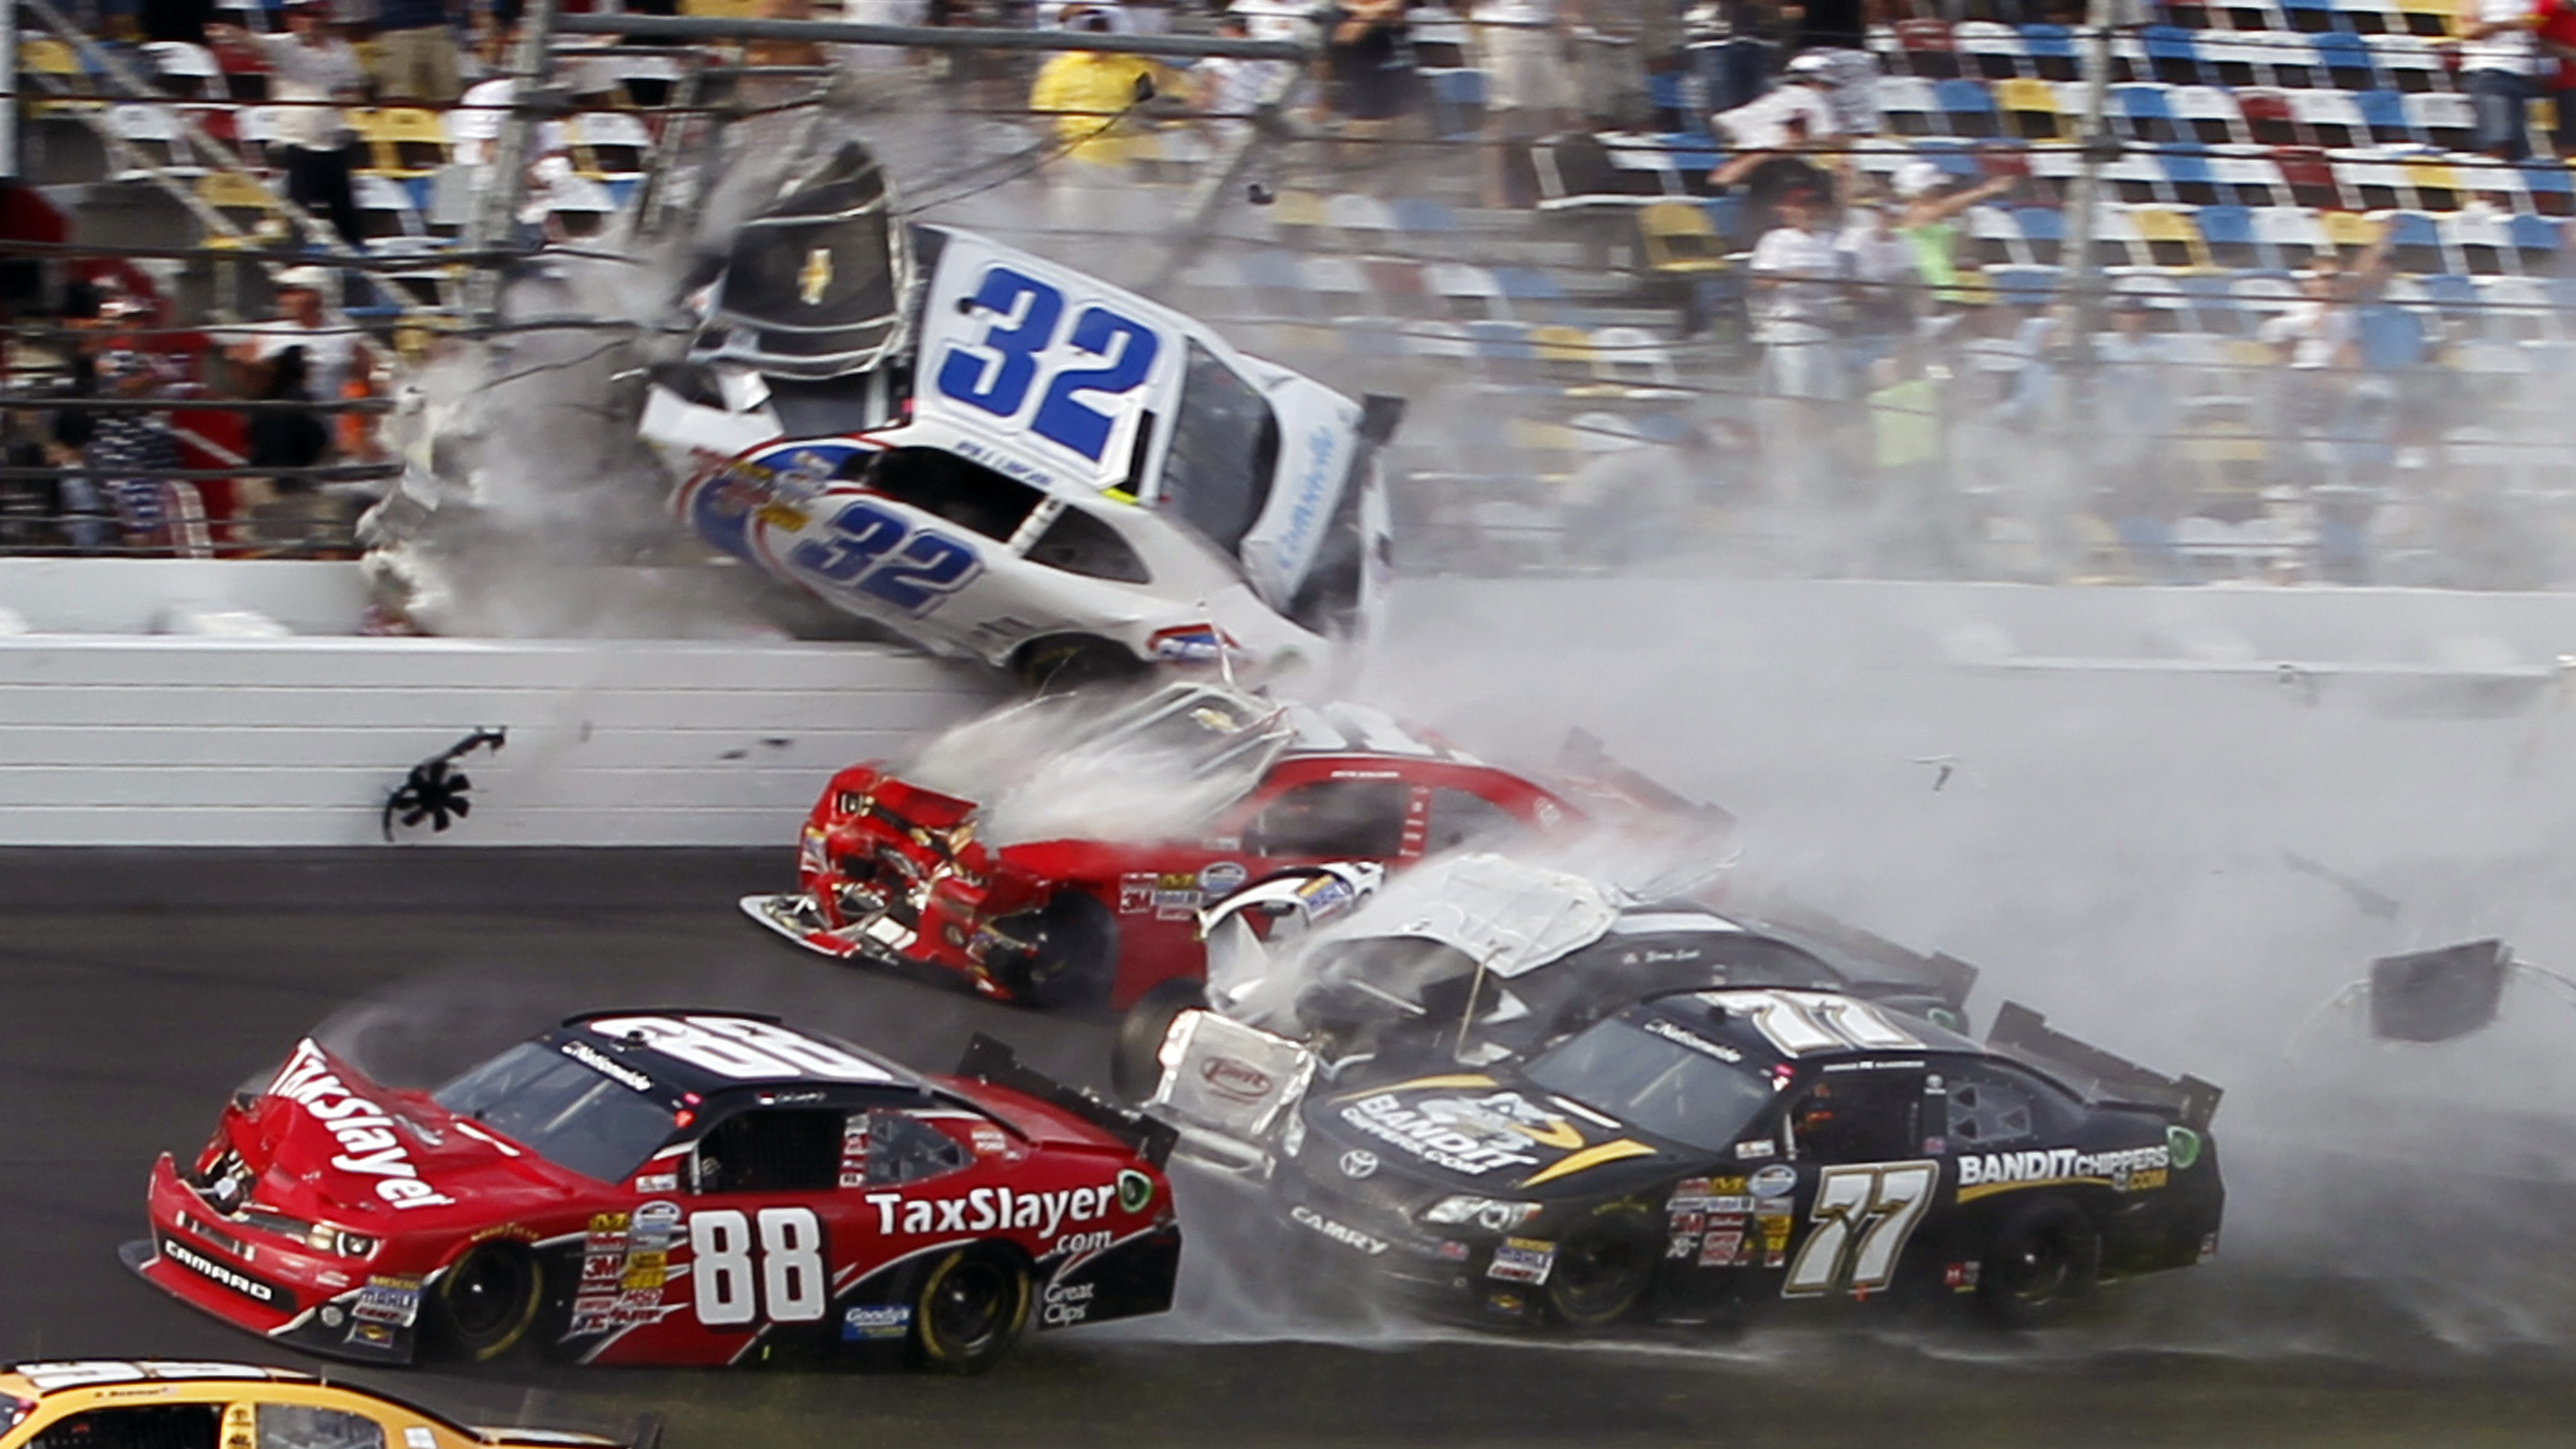 Nascar Crash Sends Car Debris Into The Stands At Daytona on two way radio nascar